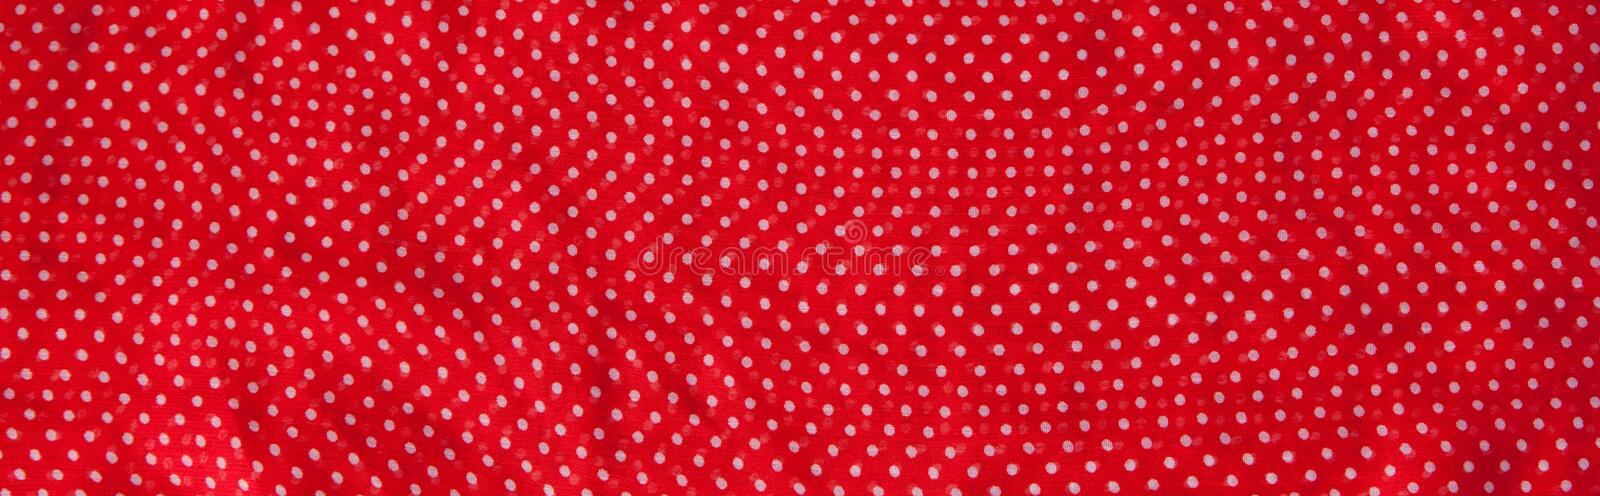 Red fabric with the white polka dots as a background texture composition stock photography